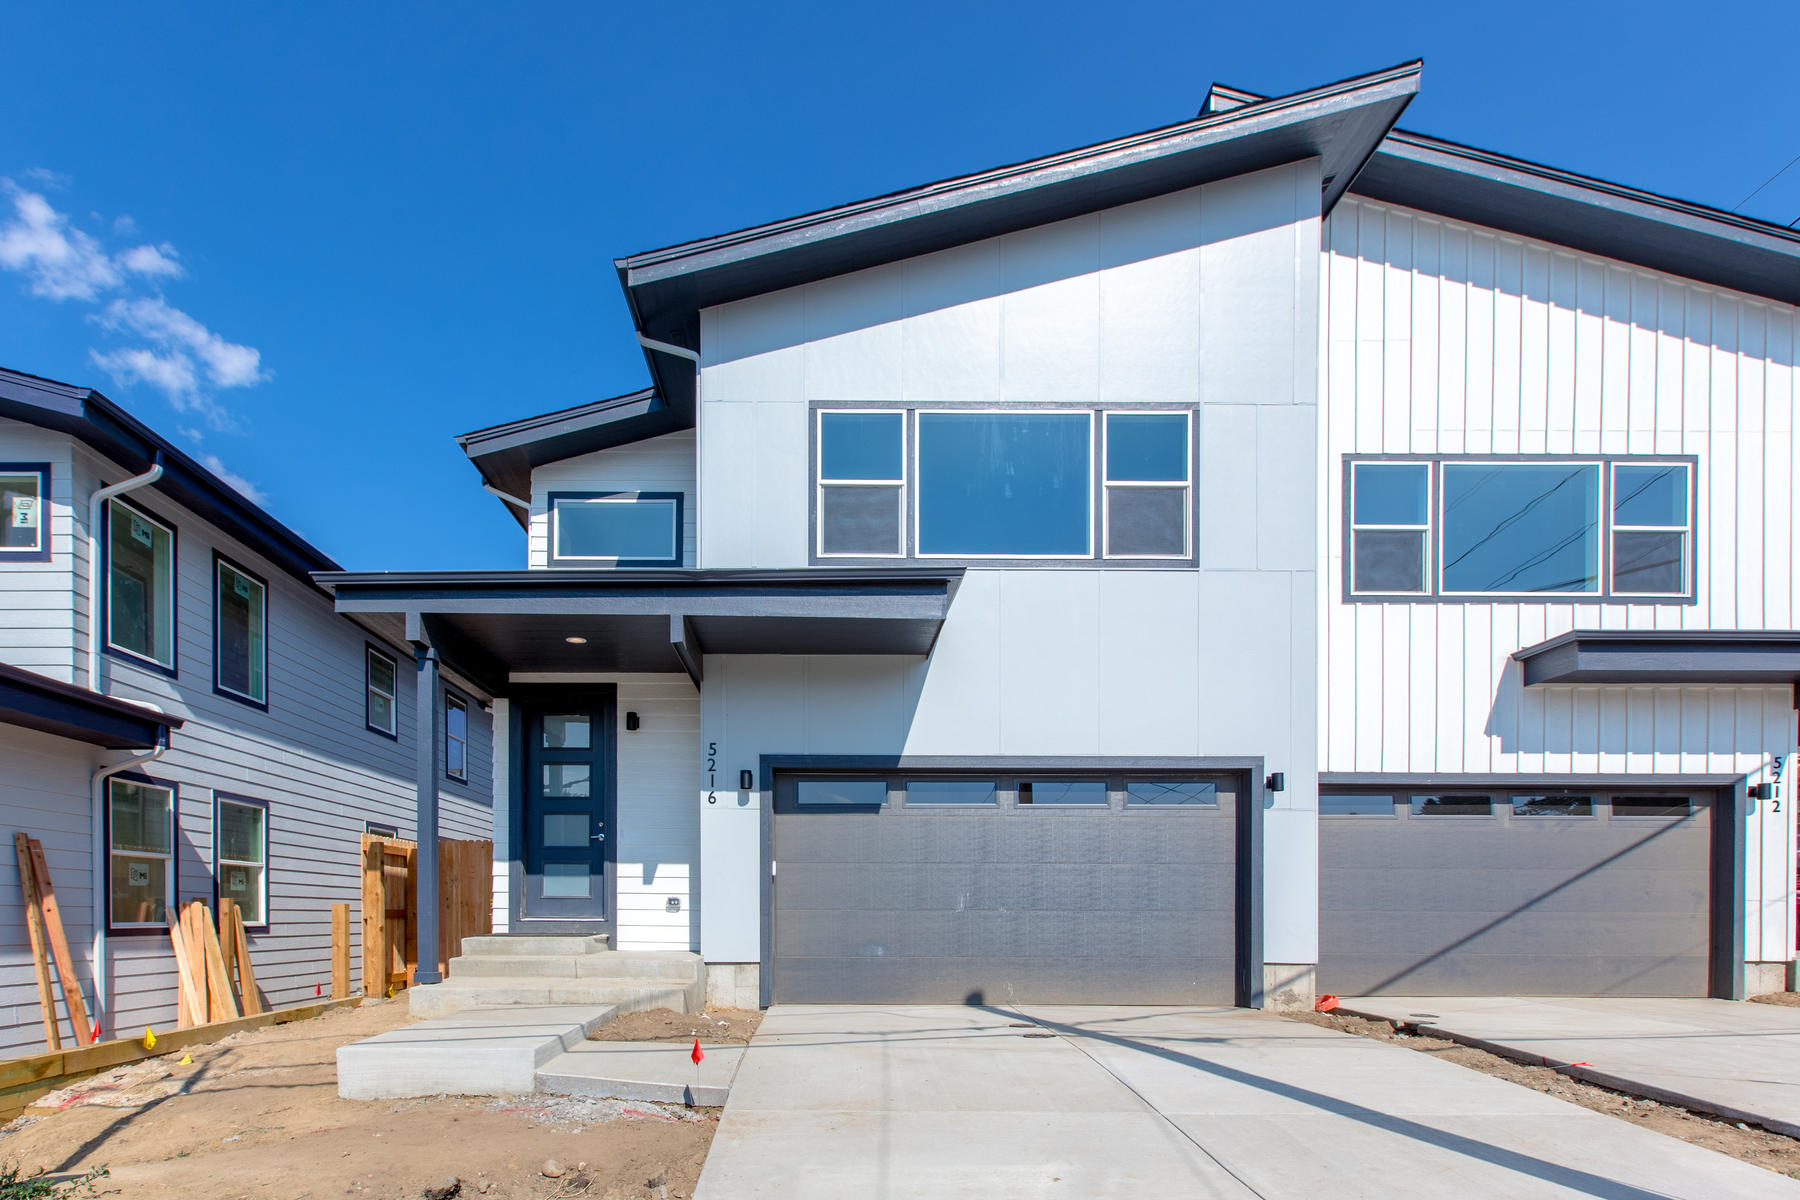 Townhouse for Active at New Construction In Hot Regis/Berkeley Area 5226 Tennyson St Denver, Colorado 80212 United States